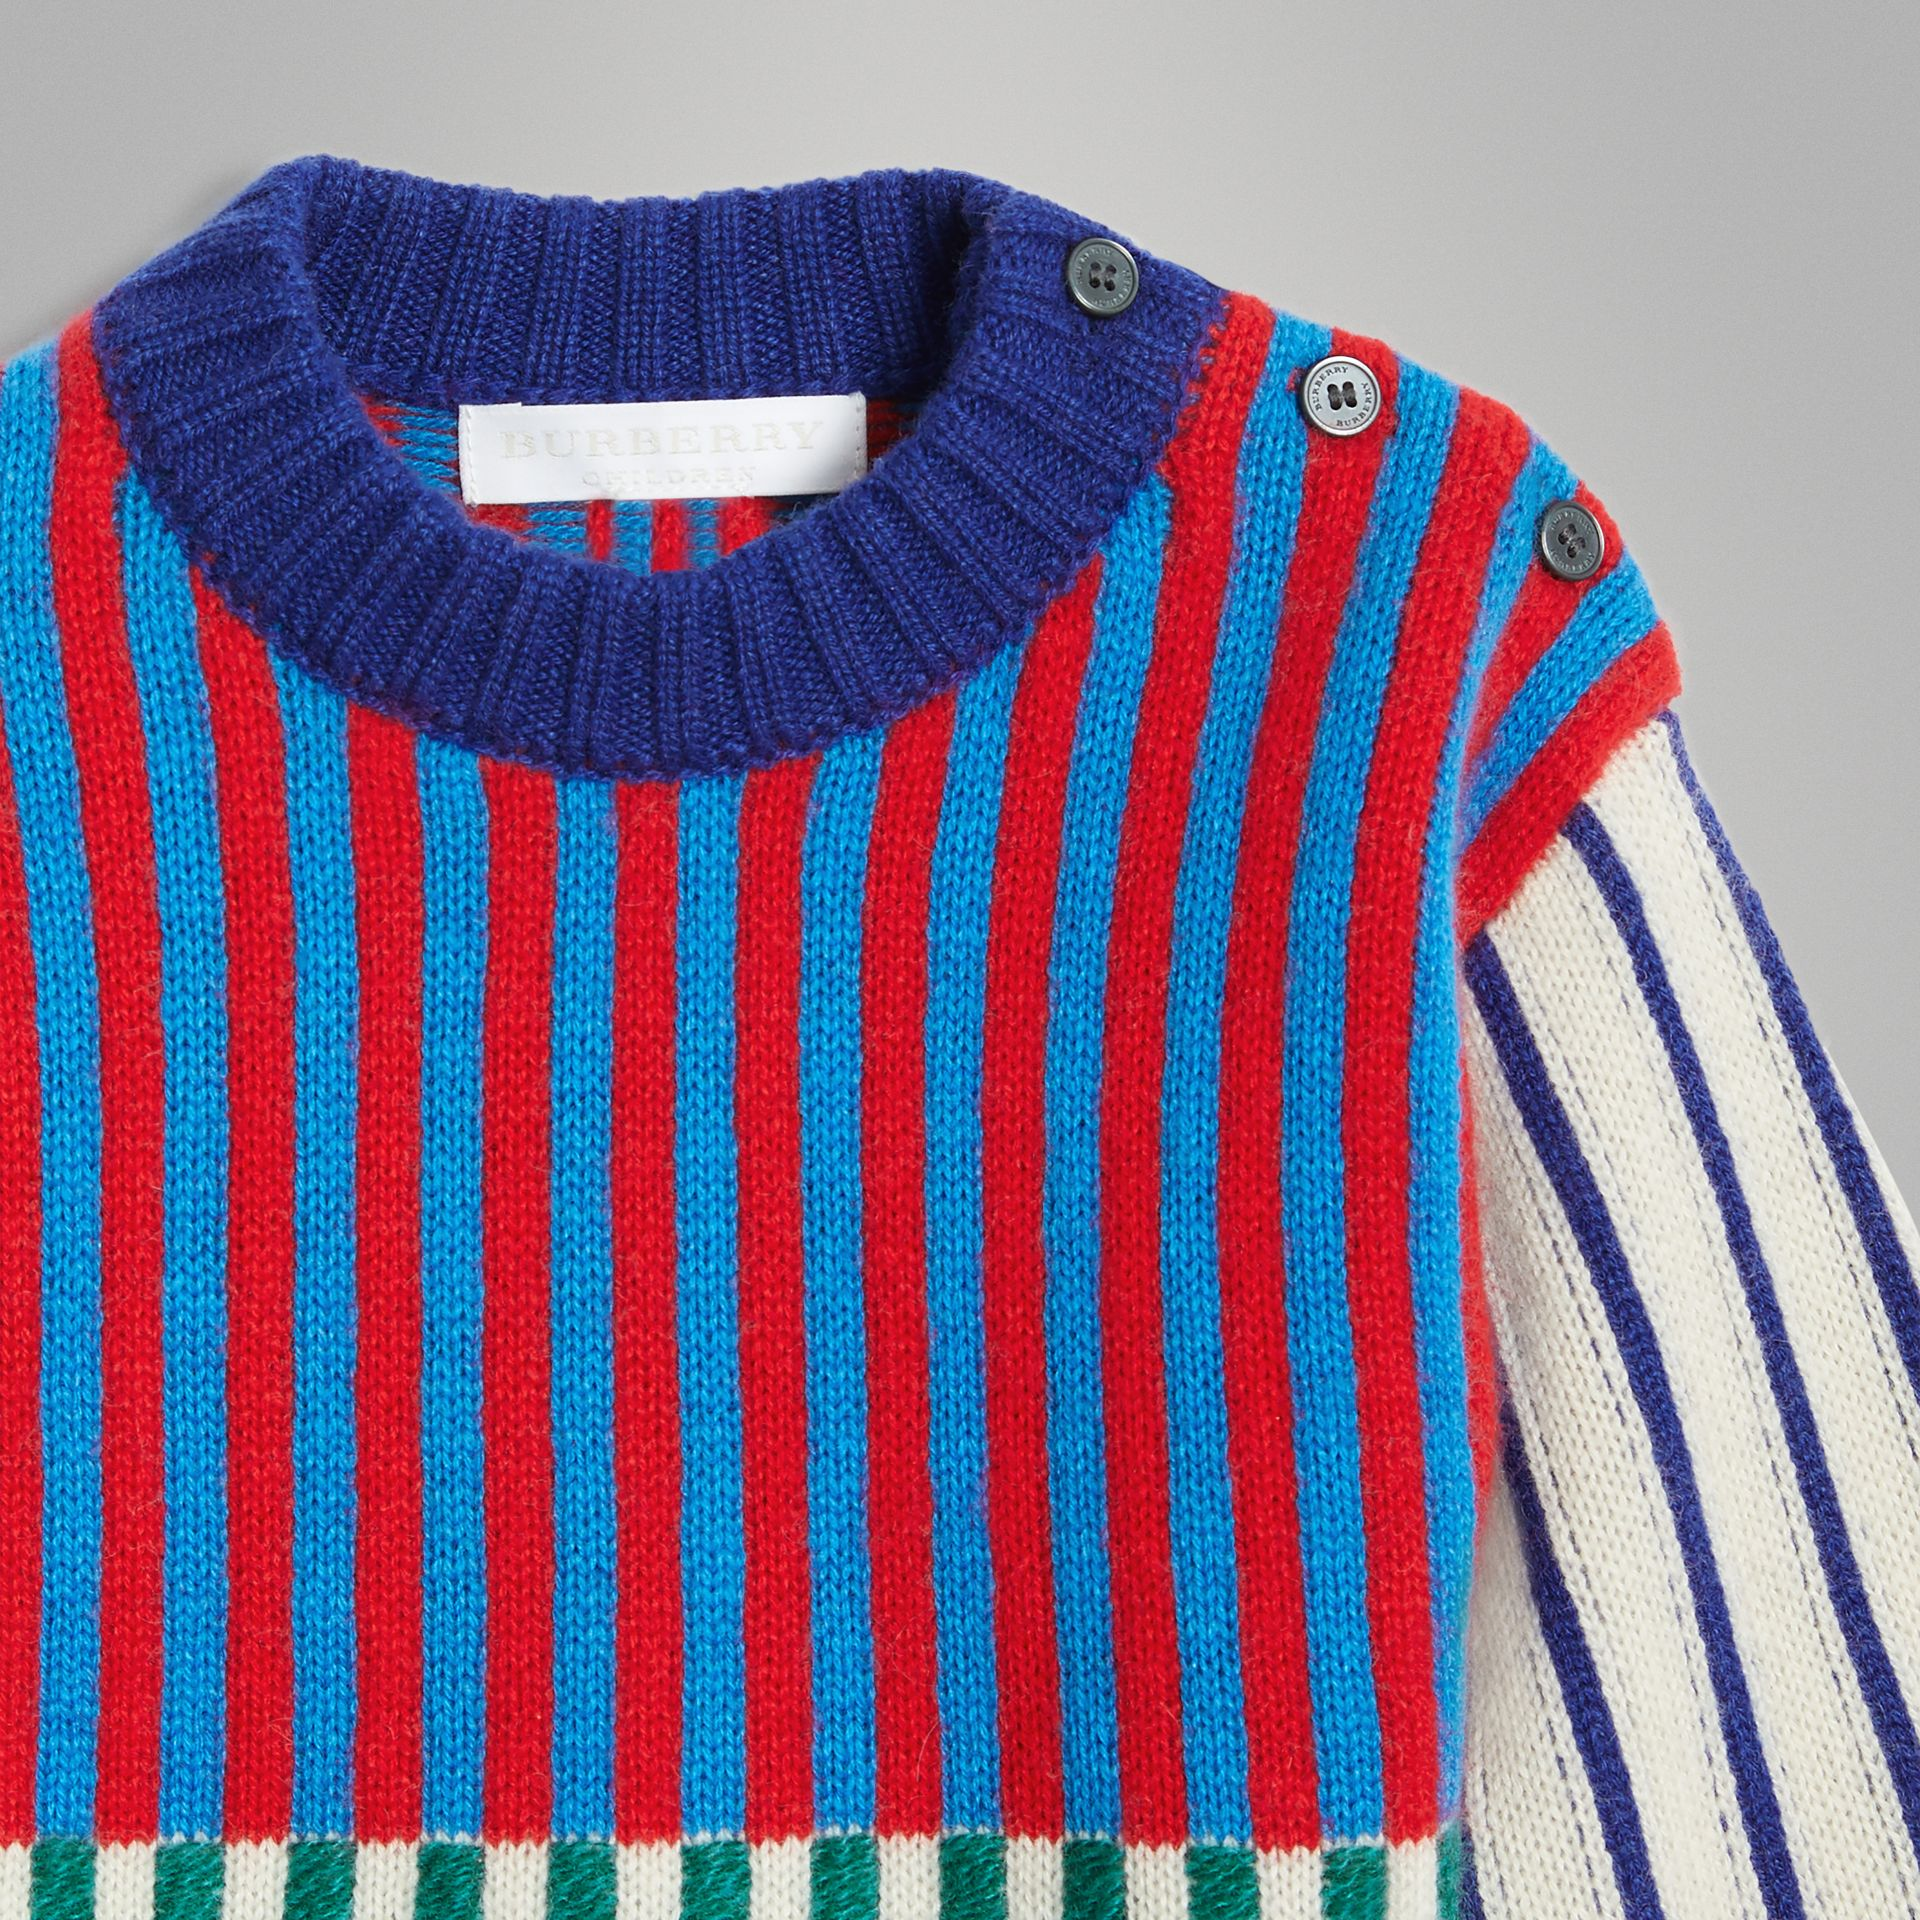 Graphic Cashmere Jacquard Sweater in Multicolour - Children | Burberry - gallery image 4